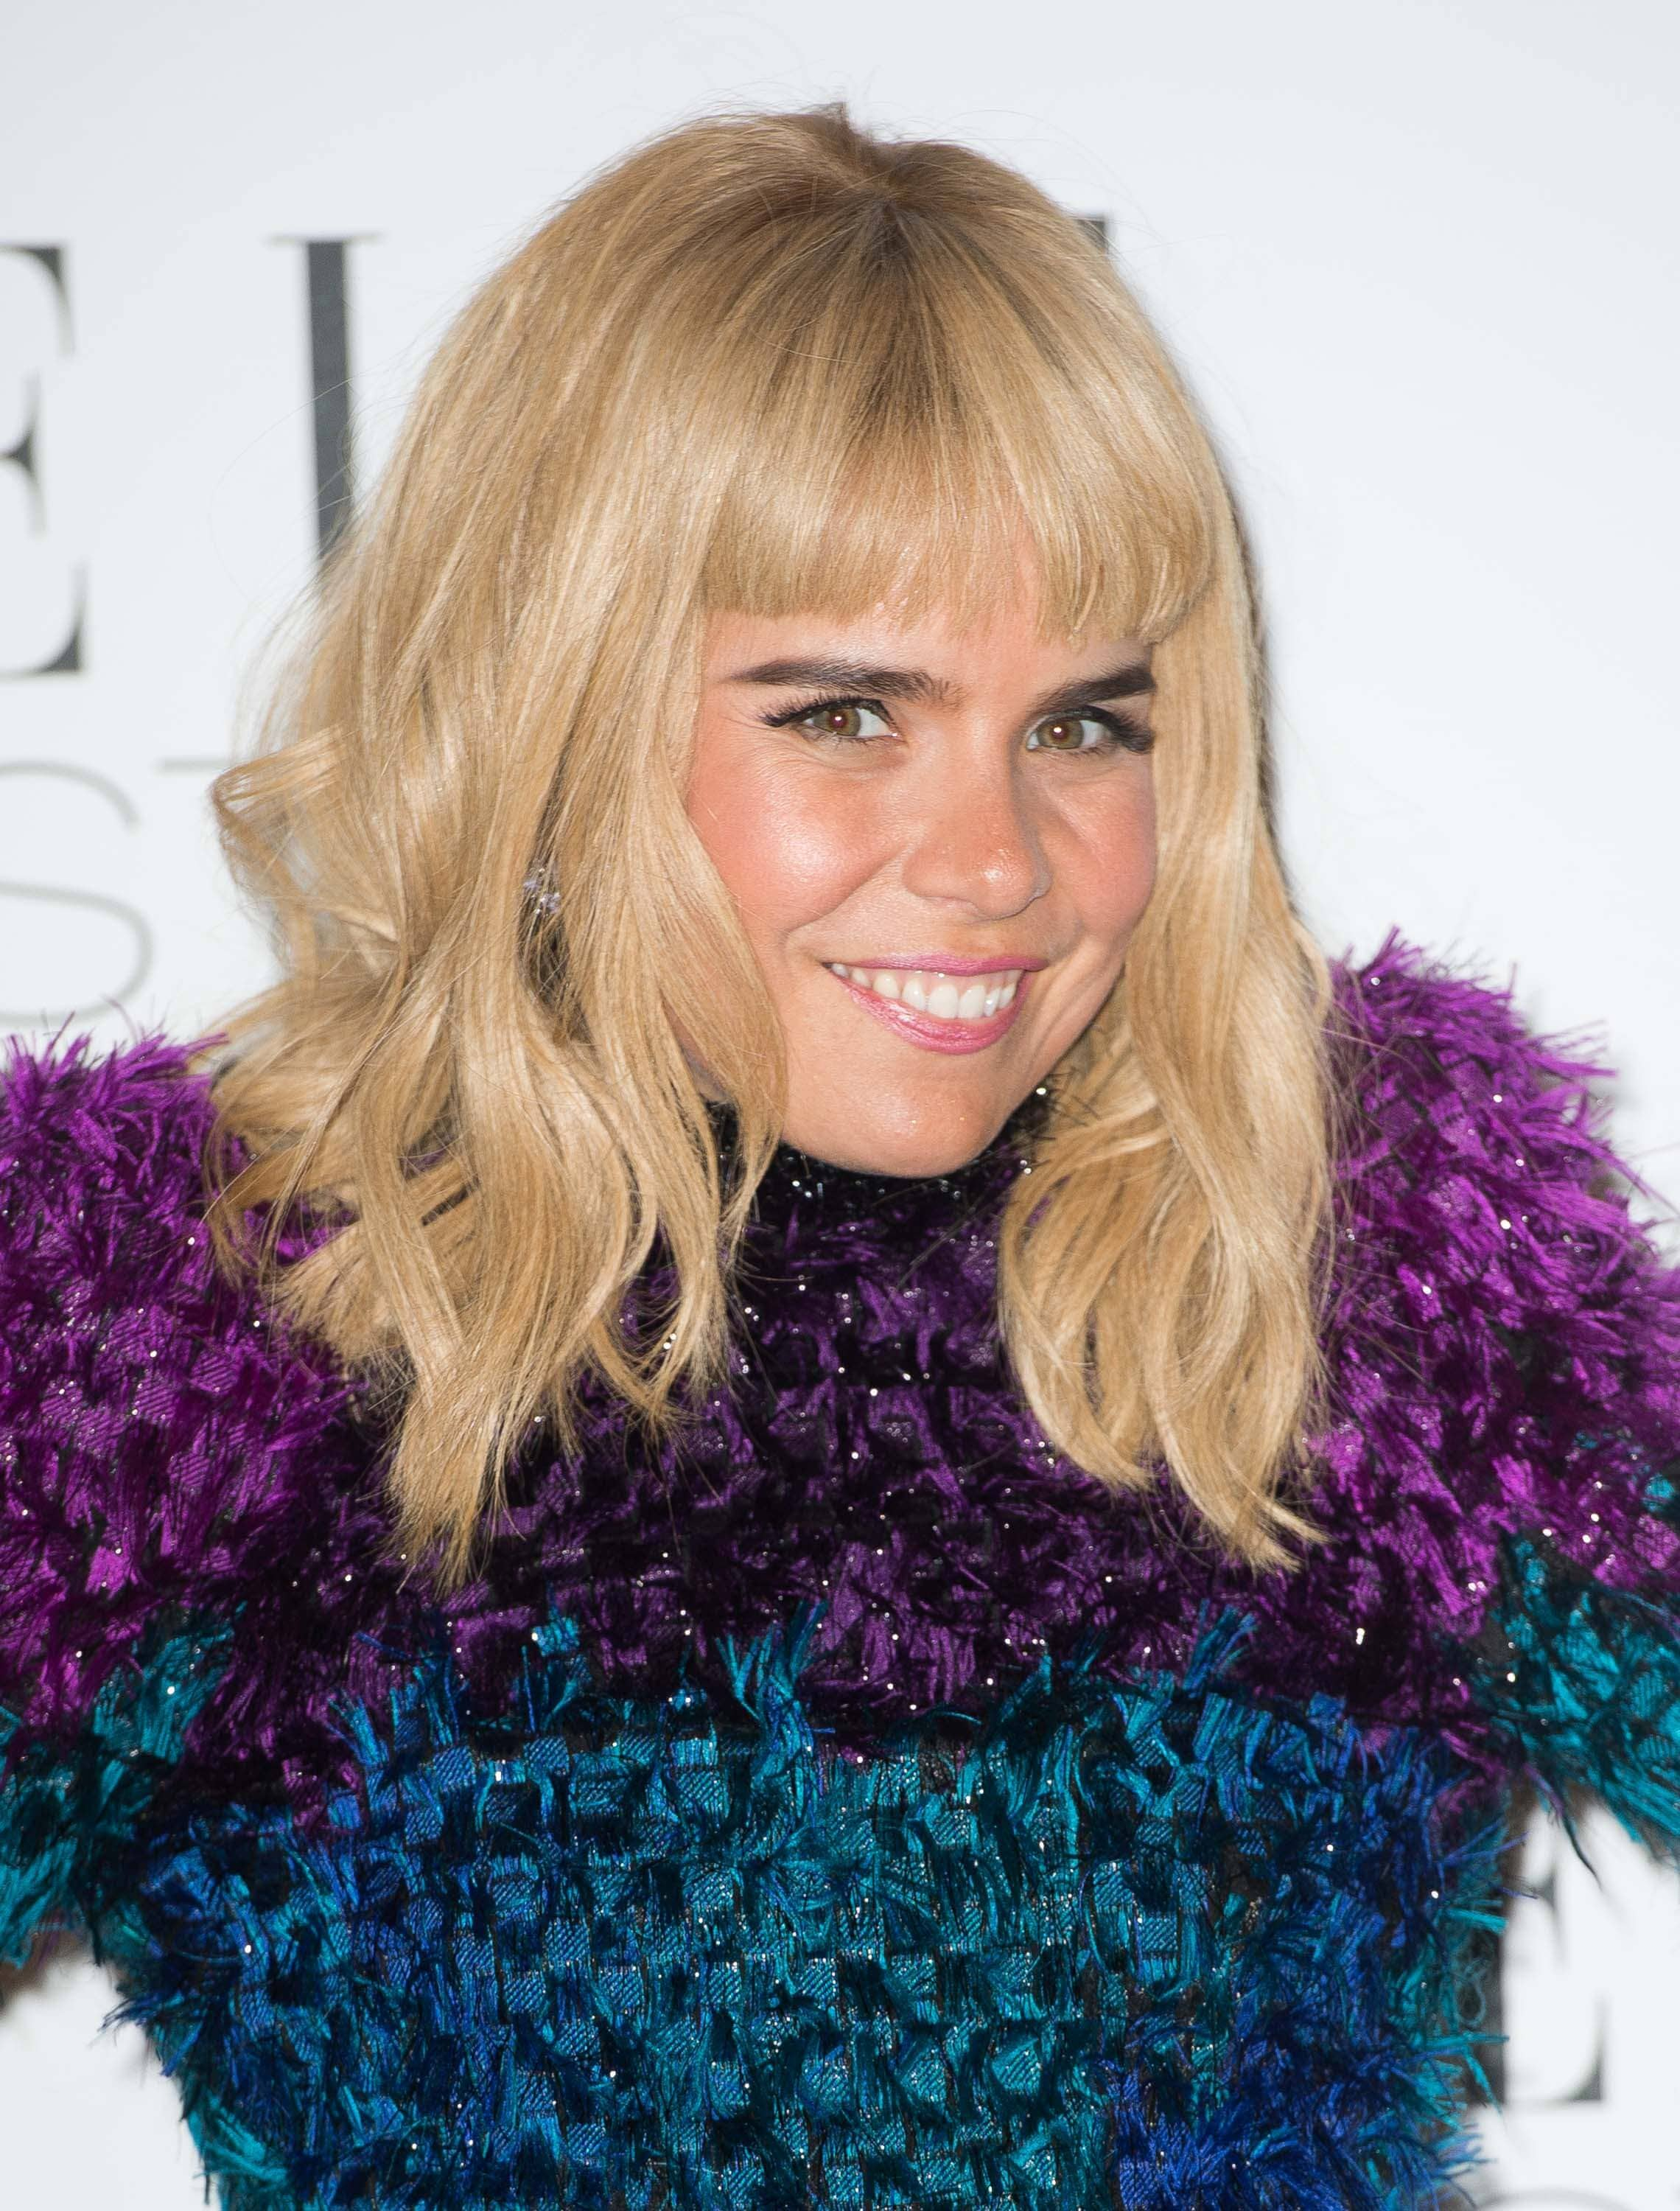 paloma faith blonde hair with blunt fringe